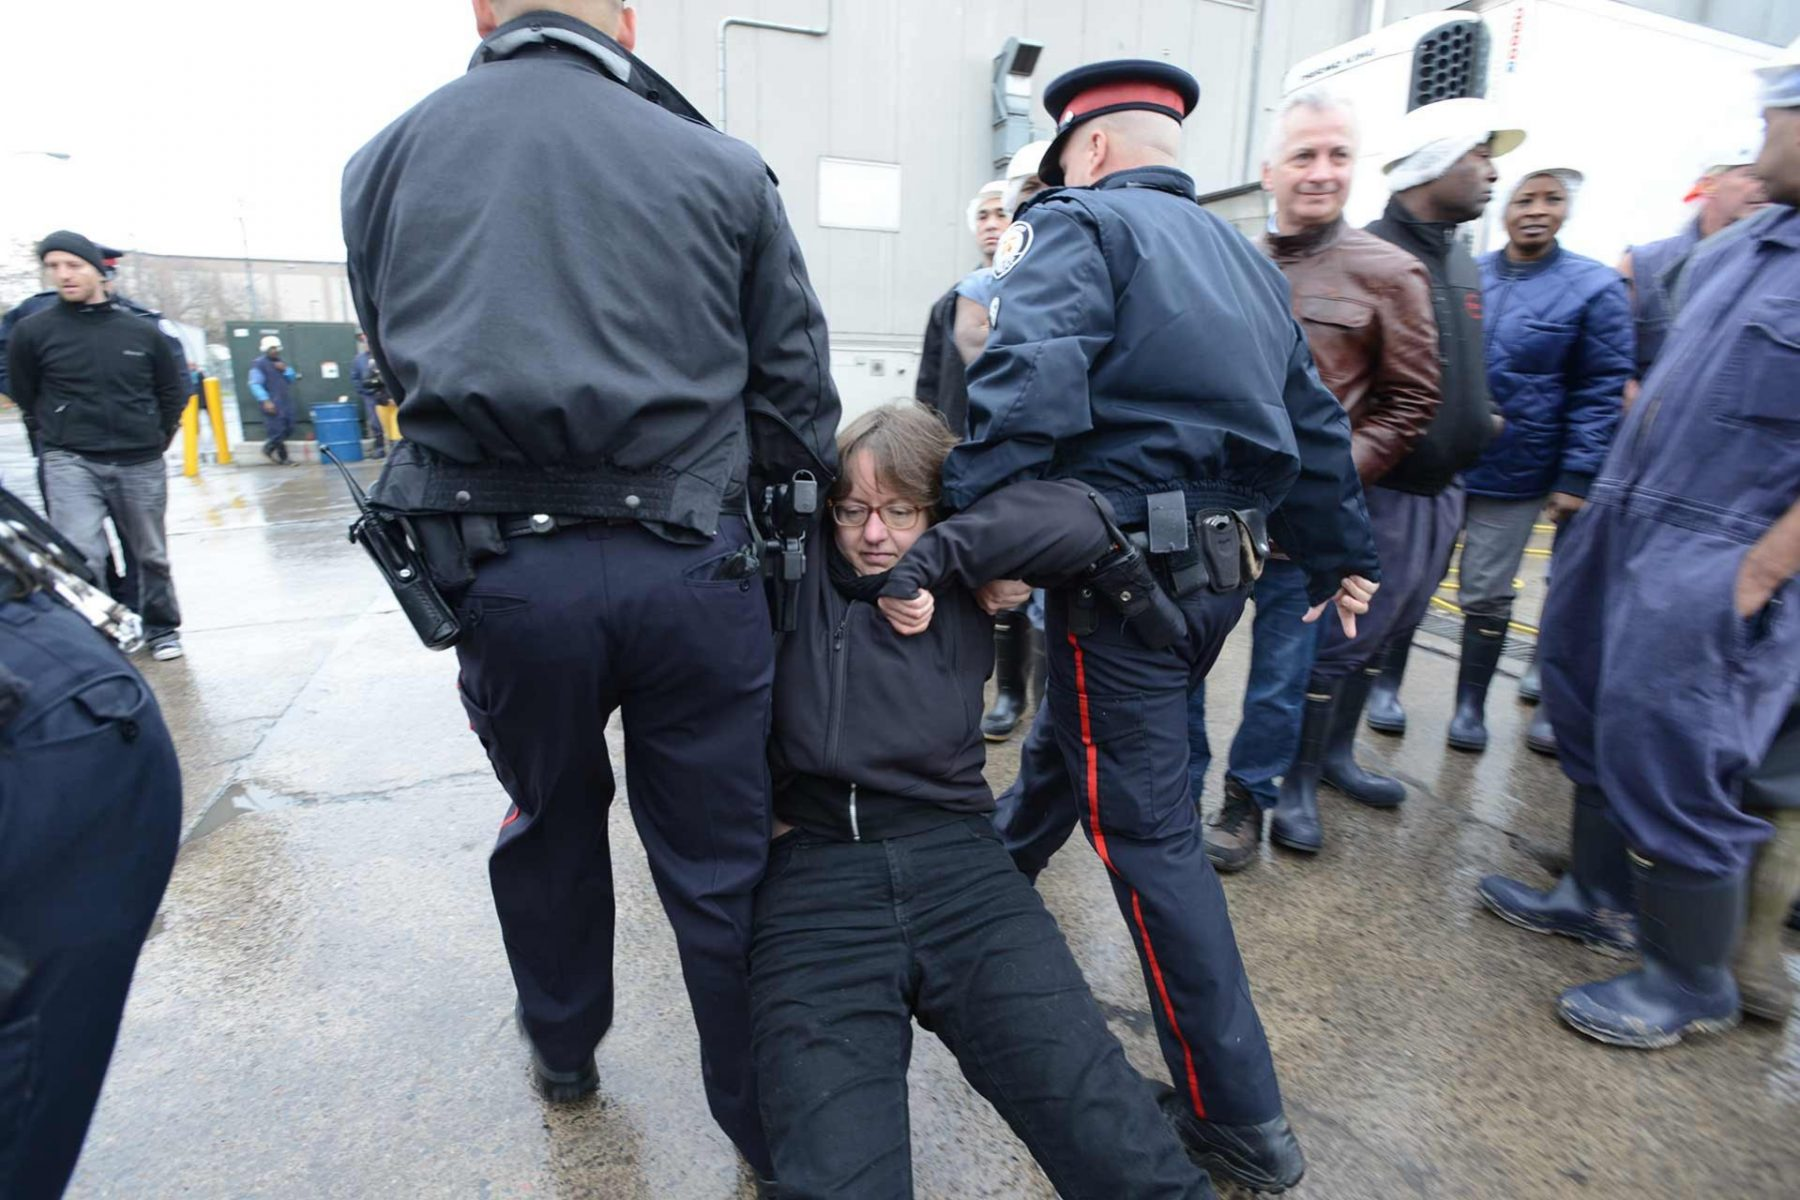 Animal activist Jenny McQueen being dragged away and arrested by police at a Direct Action Everywhere event, which blockaded the entry of trucks carrying cows to slaughter. Canada, 2014